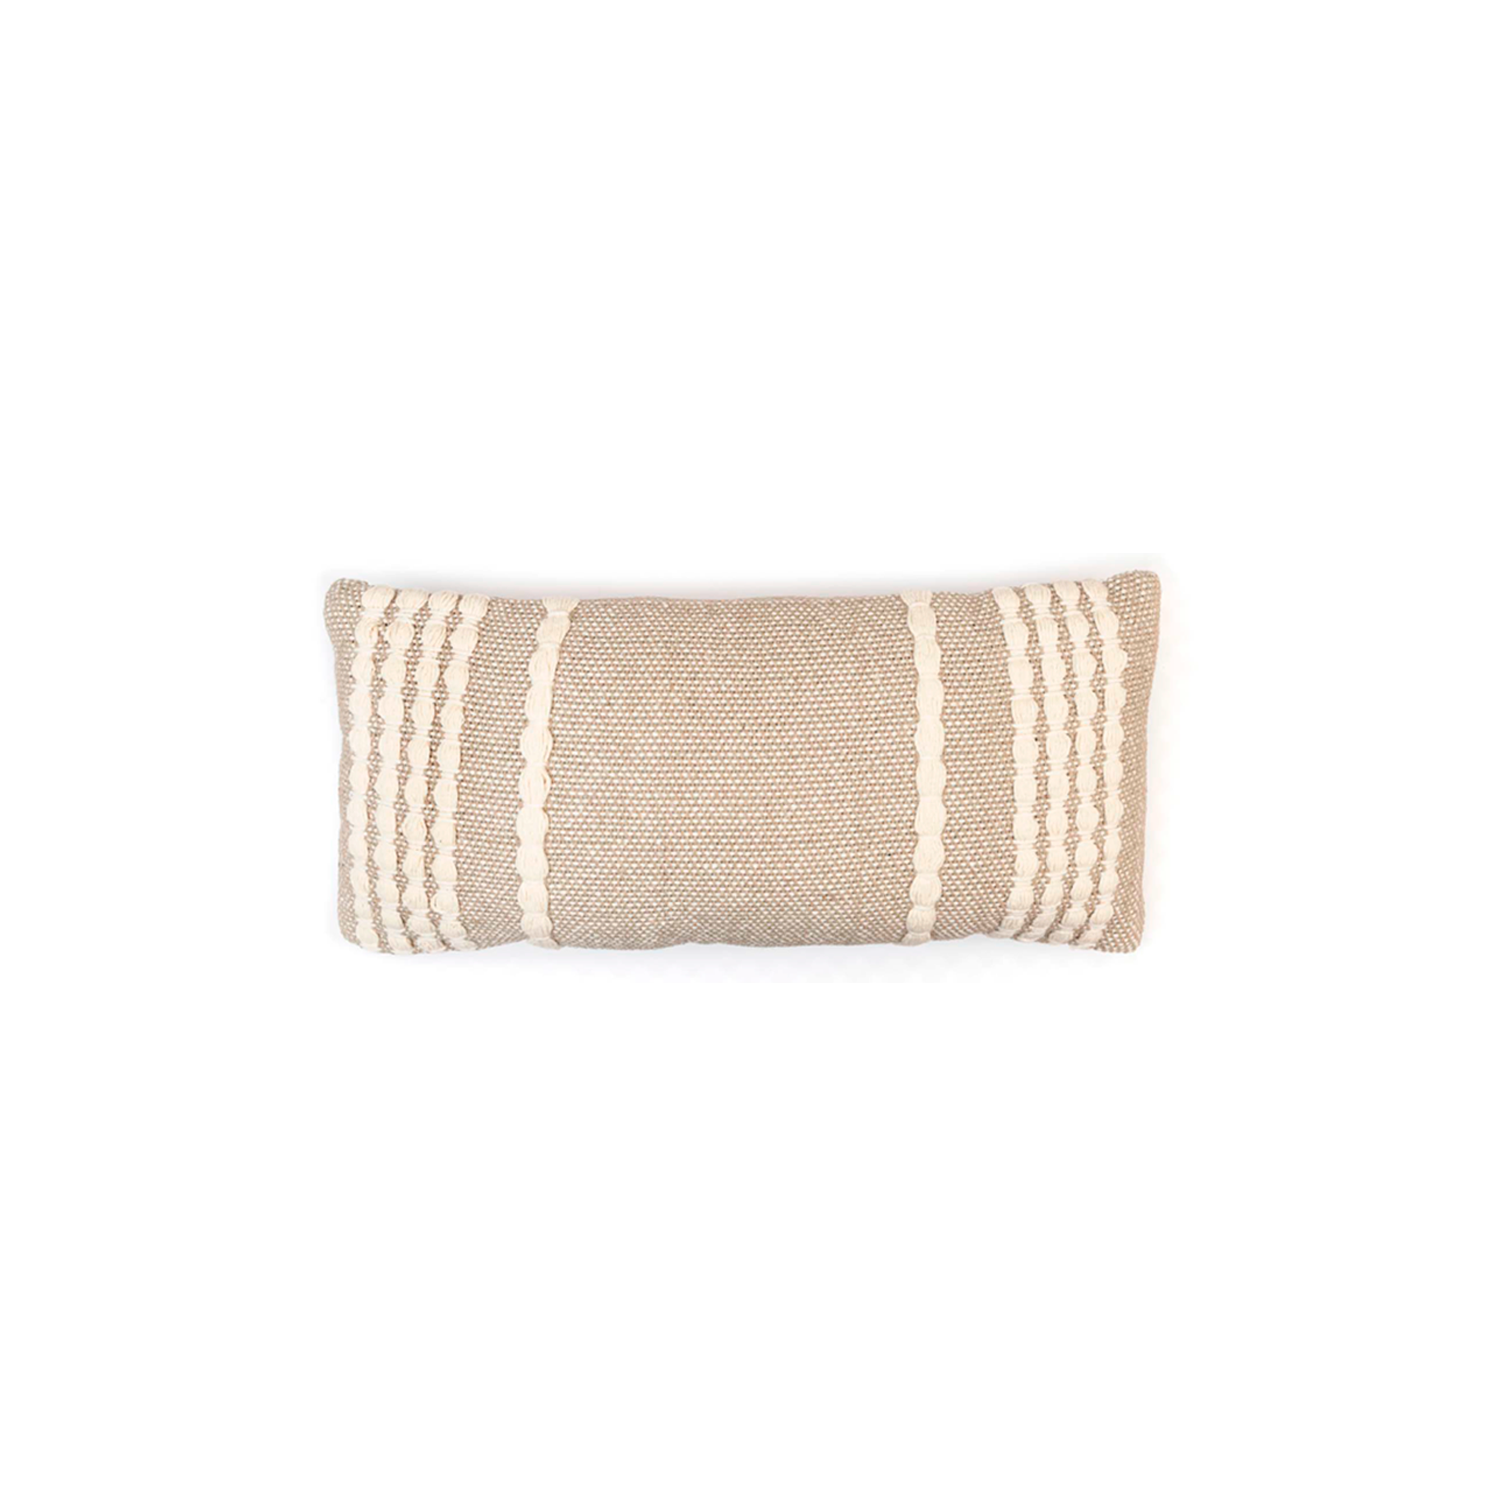 Lua Ecru Cotton Cushion Small - The Flame Sustainable Collection is made from a selection of organic cotton fibres, eco-friendly, hand-woven or elaborated using traditional hand-loom techniques. Carefully knitted within a trained community of women that found in their craft a way to provide their families.  This collection combines Elisa Atheniense mission for responsible sourcing and manufacturing. Each piece is meticulously hand-loom by artisans who practised methods with age-old techniques. With a minimal electricity impact, each item crafted is therefore unique and exclusive. Weavers and artisans are the ultimate lifelines of Elisa Atheniense Home Products.  The hand woven cotton, washable cushion cover is made in Brazil and the inner cushion is made in the UK.   | Matter of Stuff